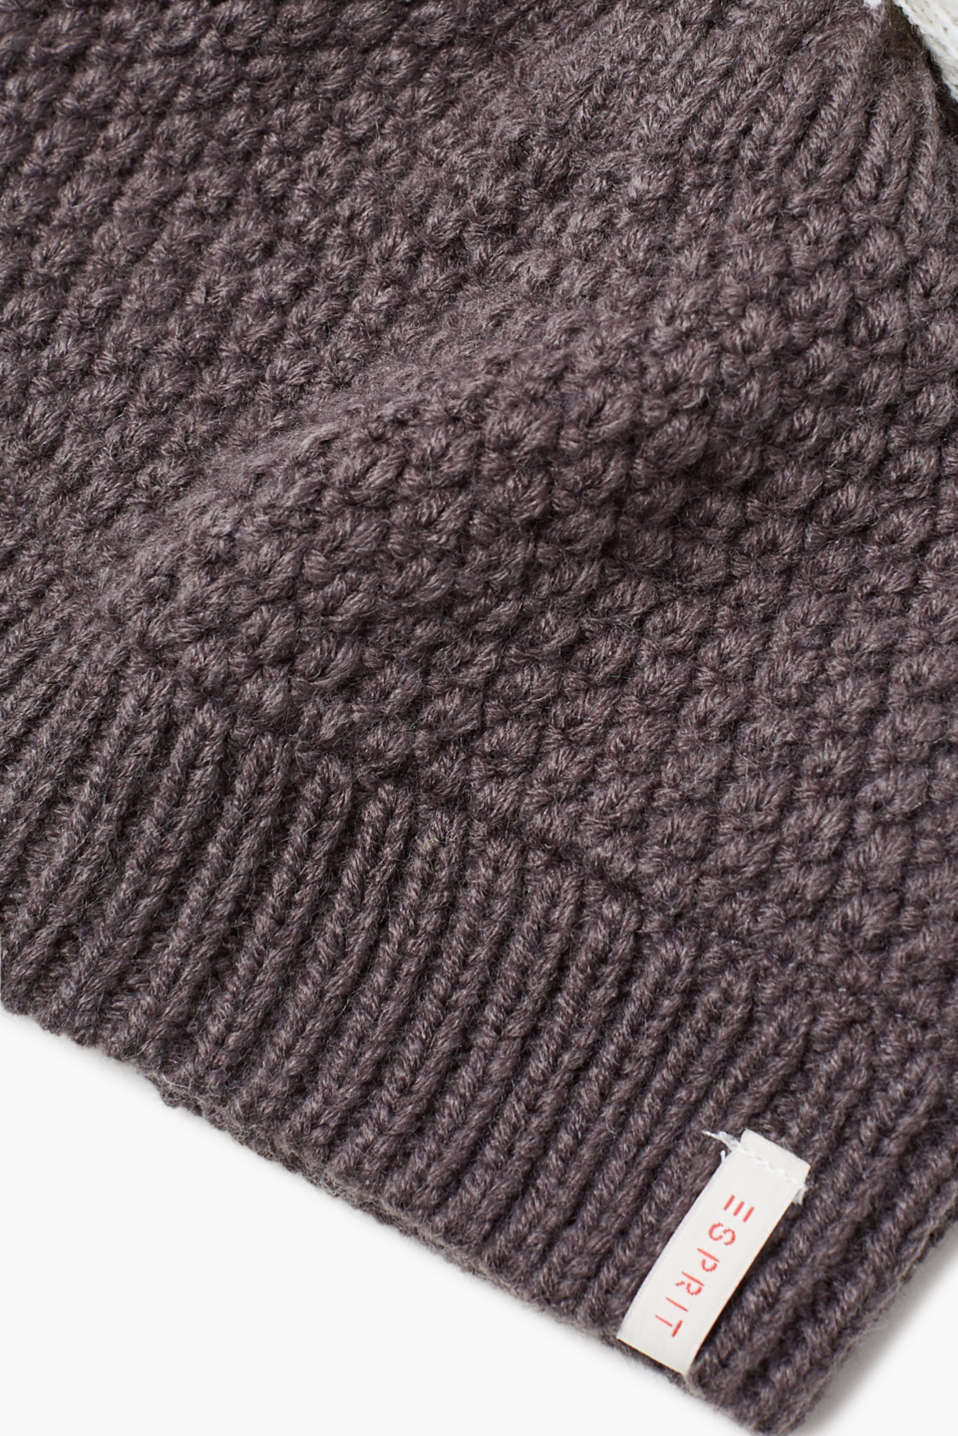 Knit bobble hat with fleece lining